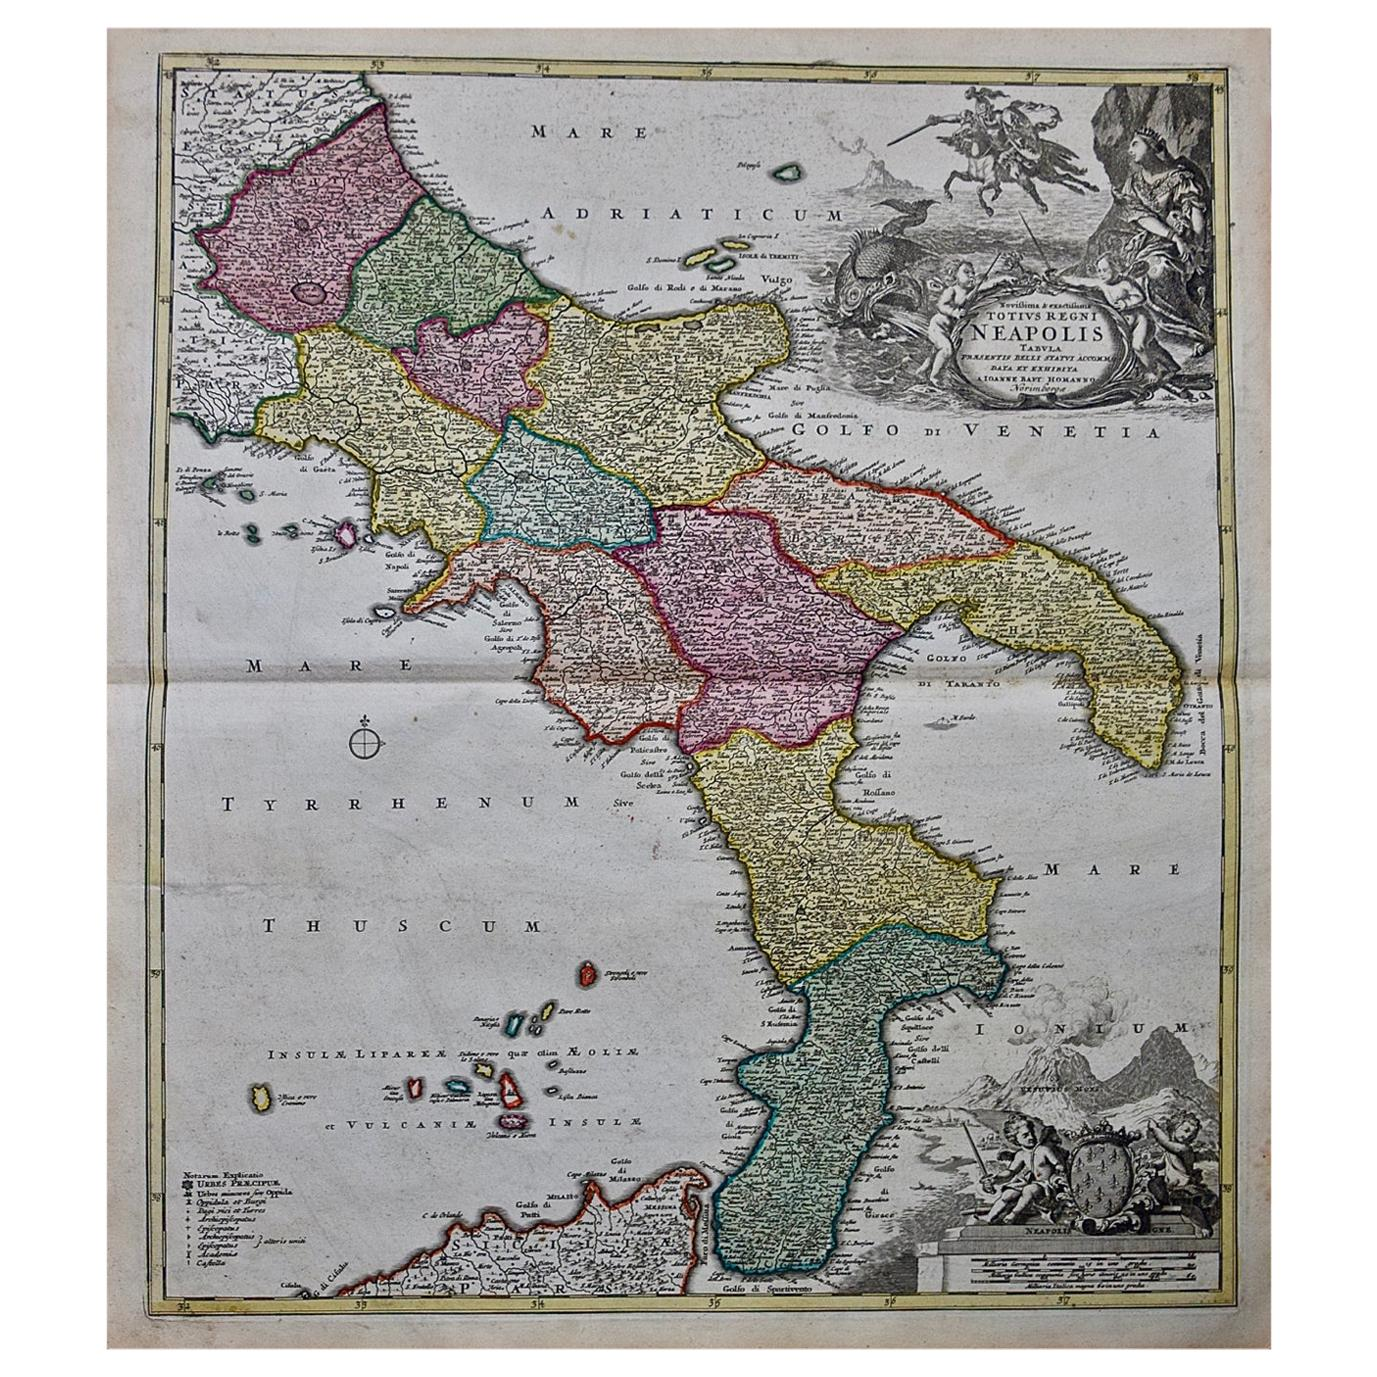 Hand-Colored 18th Century Homann Map of The Kingdom of Naples and Southern Italy